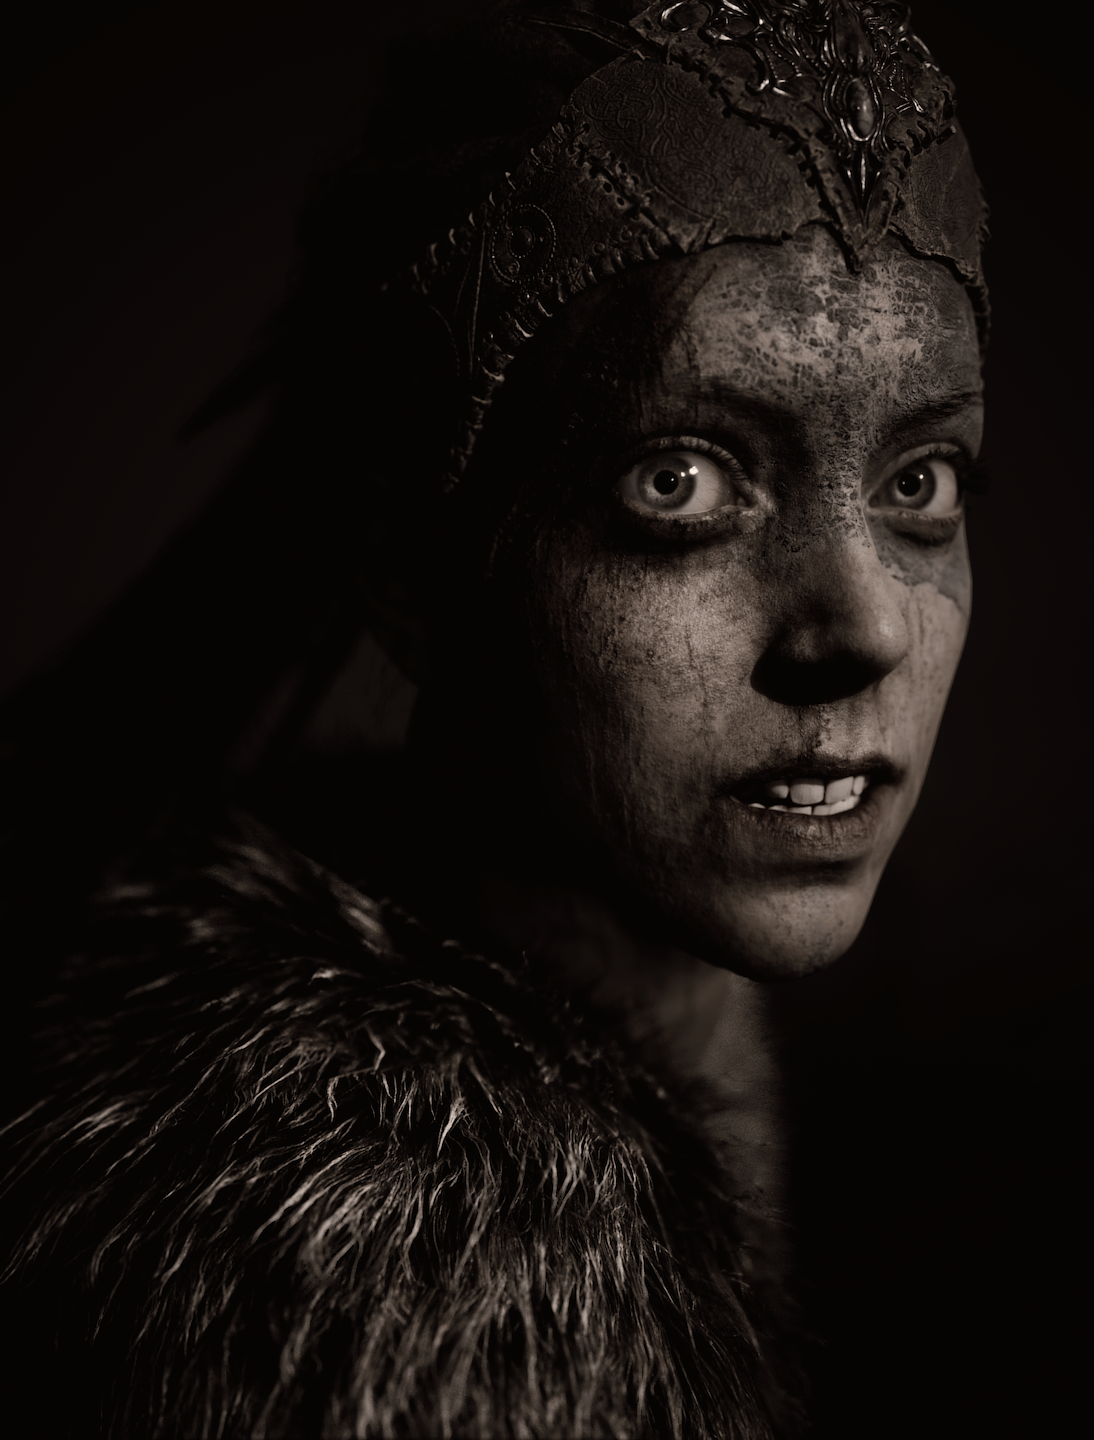 Check out these super detailed screens from Hellblade: Senua's